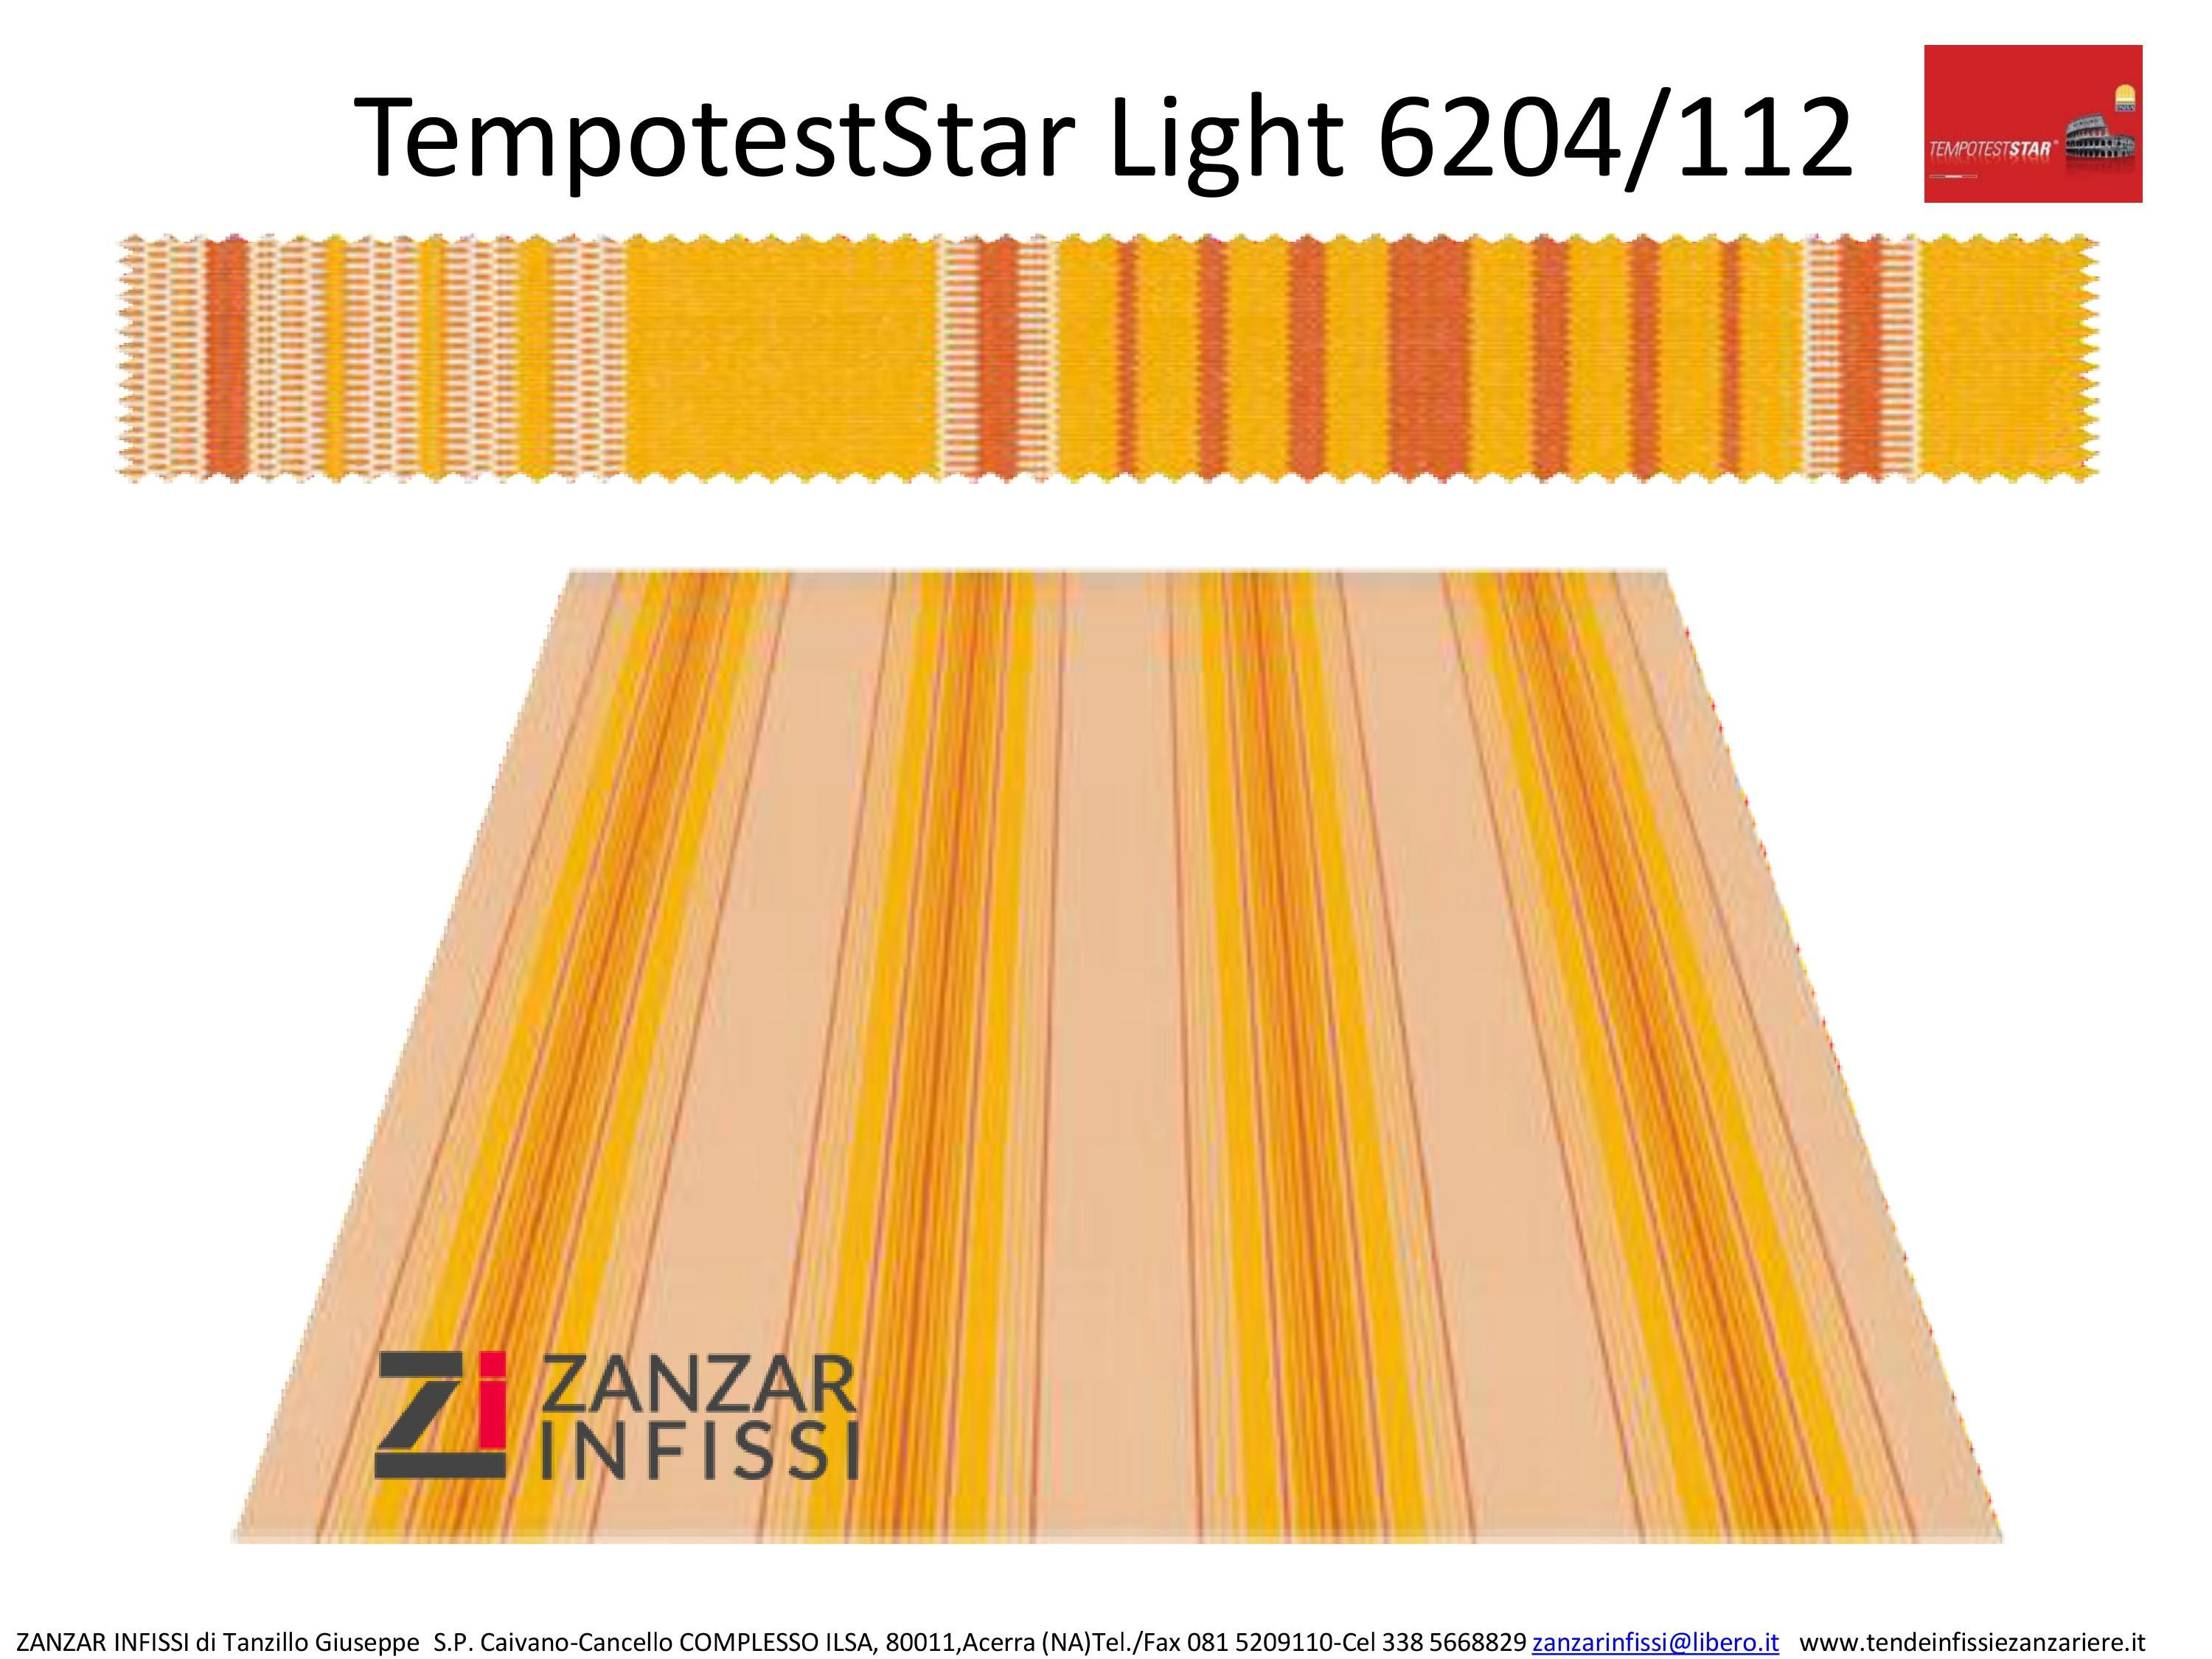 Tempotest star light 6204/112